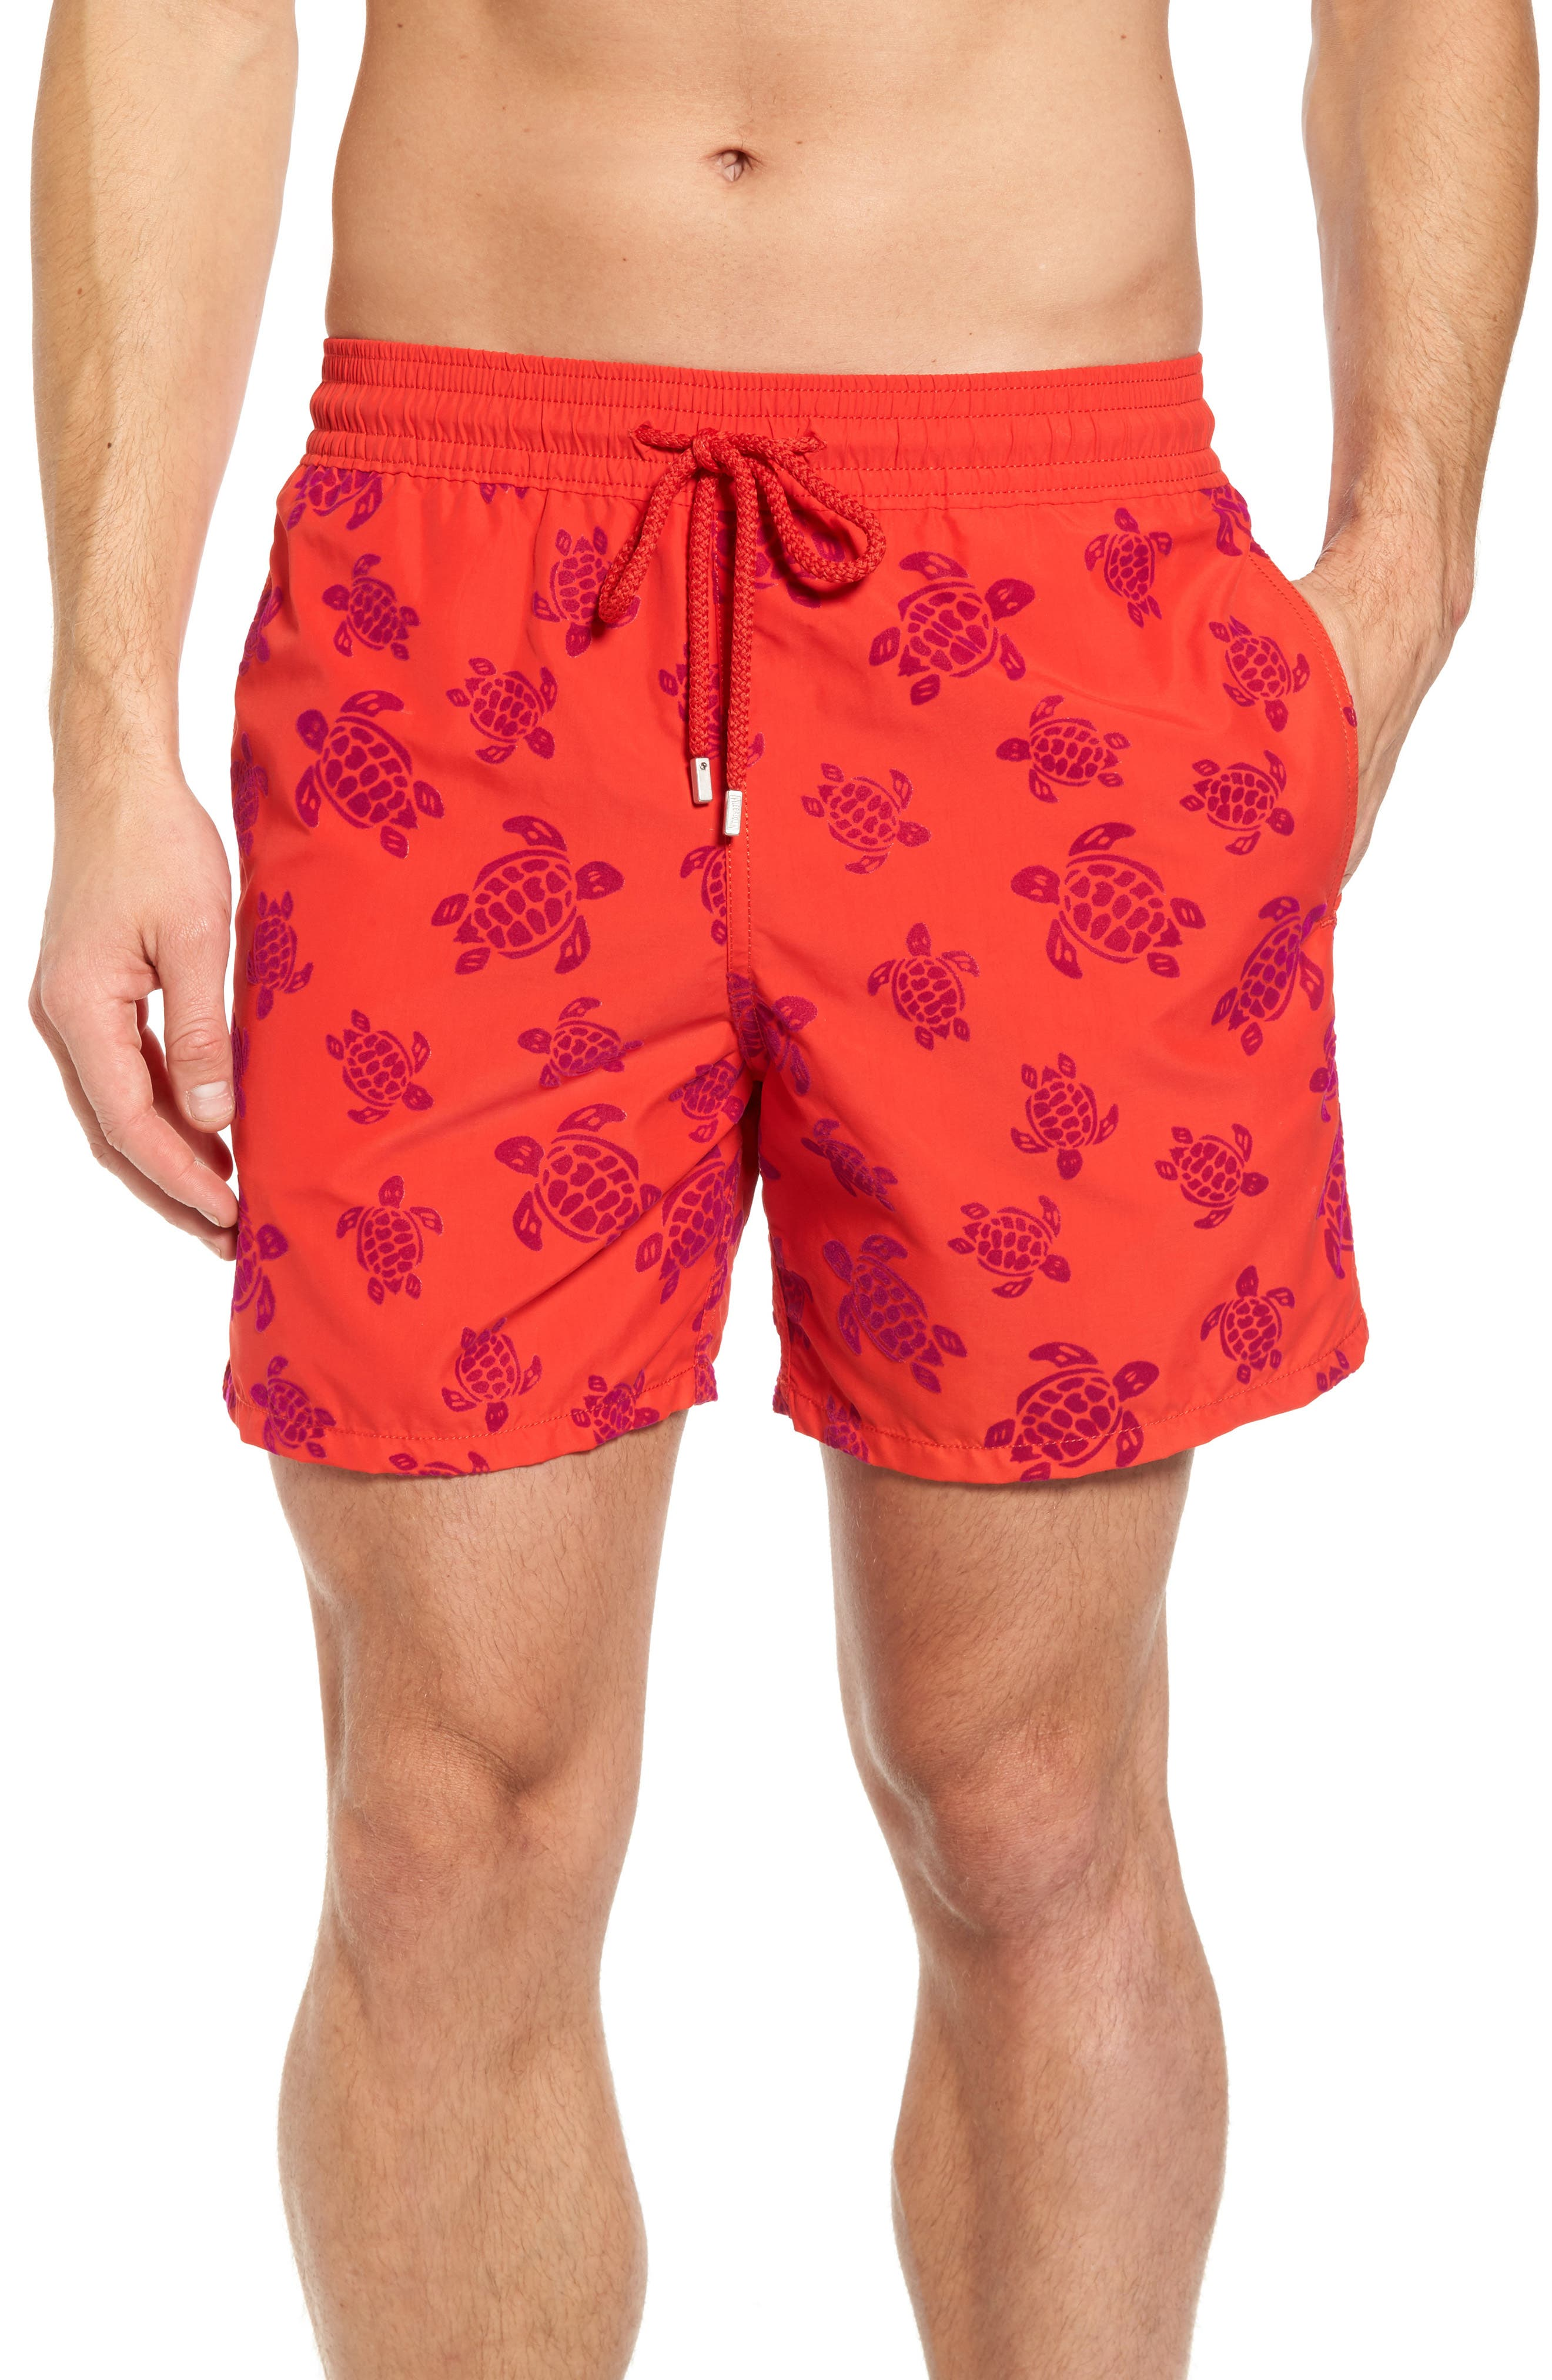 Flocked Turtles Swim Trunks,                             Main thumbnail 1, color,                             POPPY RED